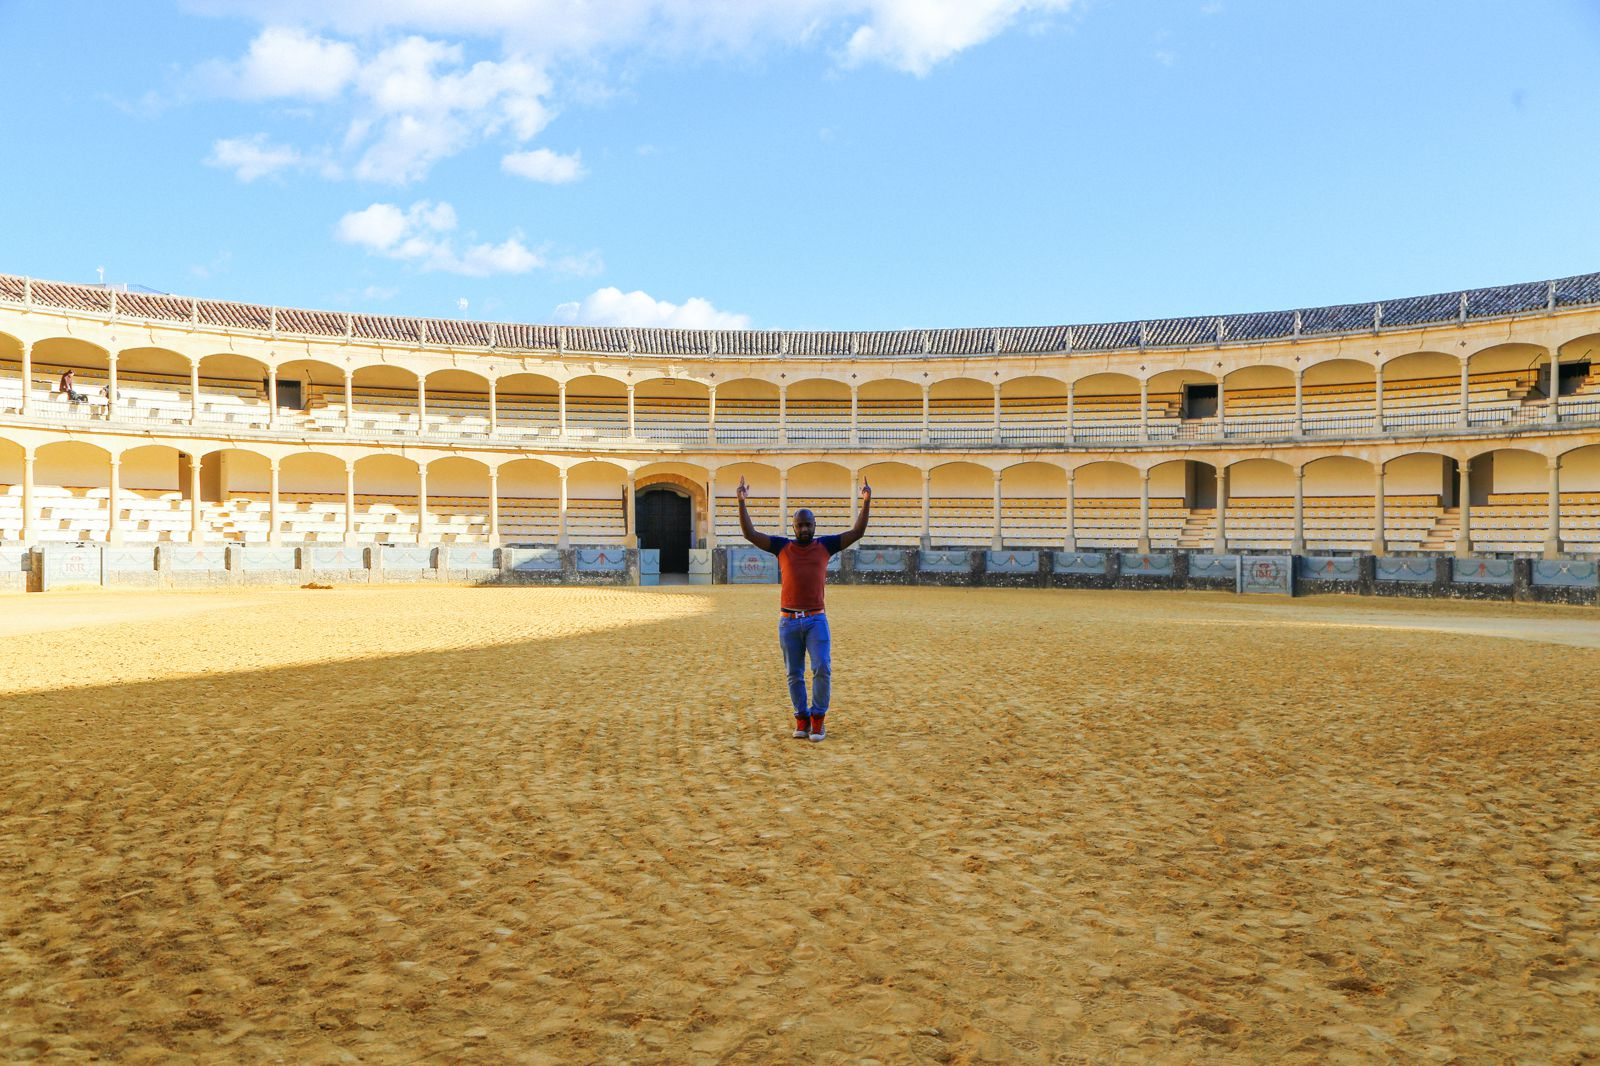 Postcards From Spain - Malaga, Ronda And The Alhambra (10)